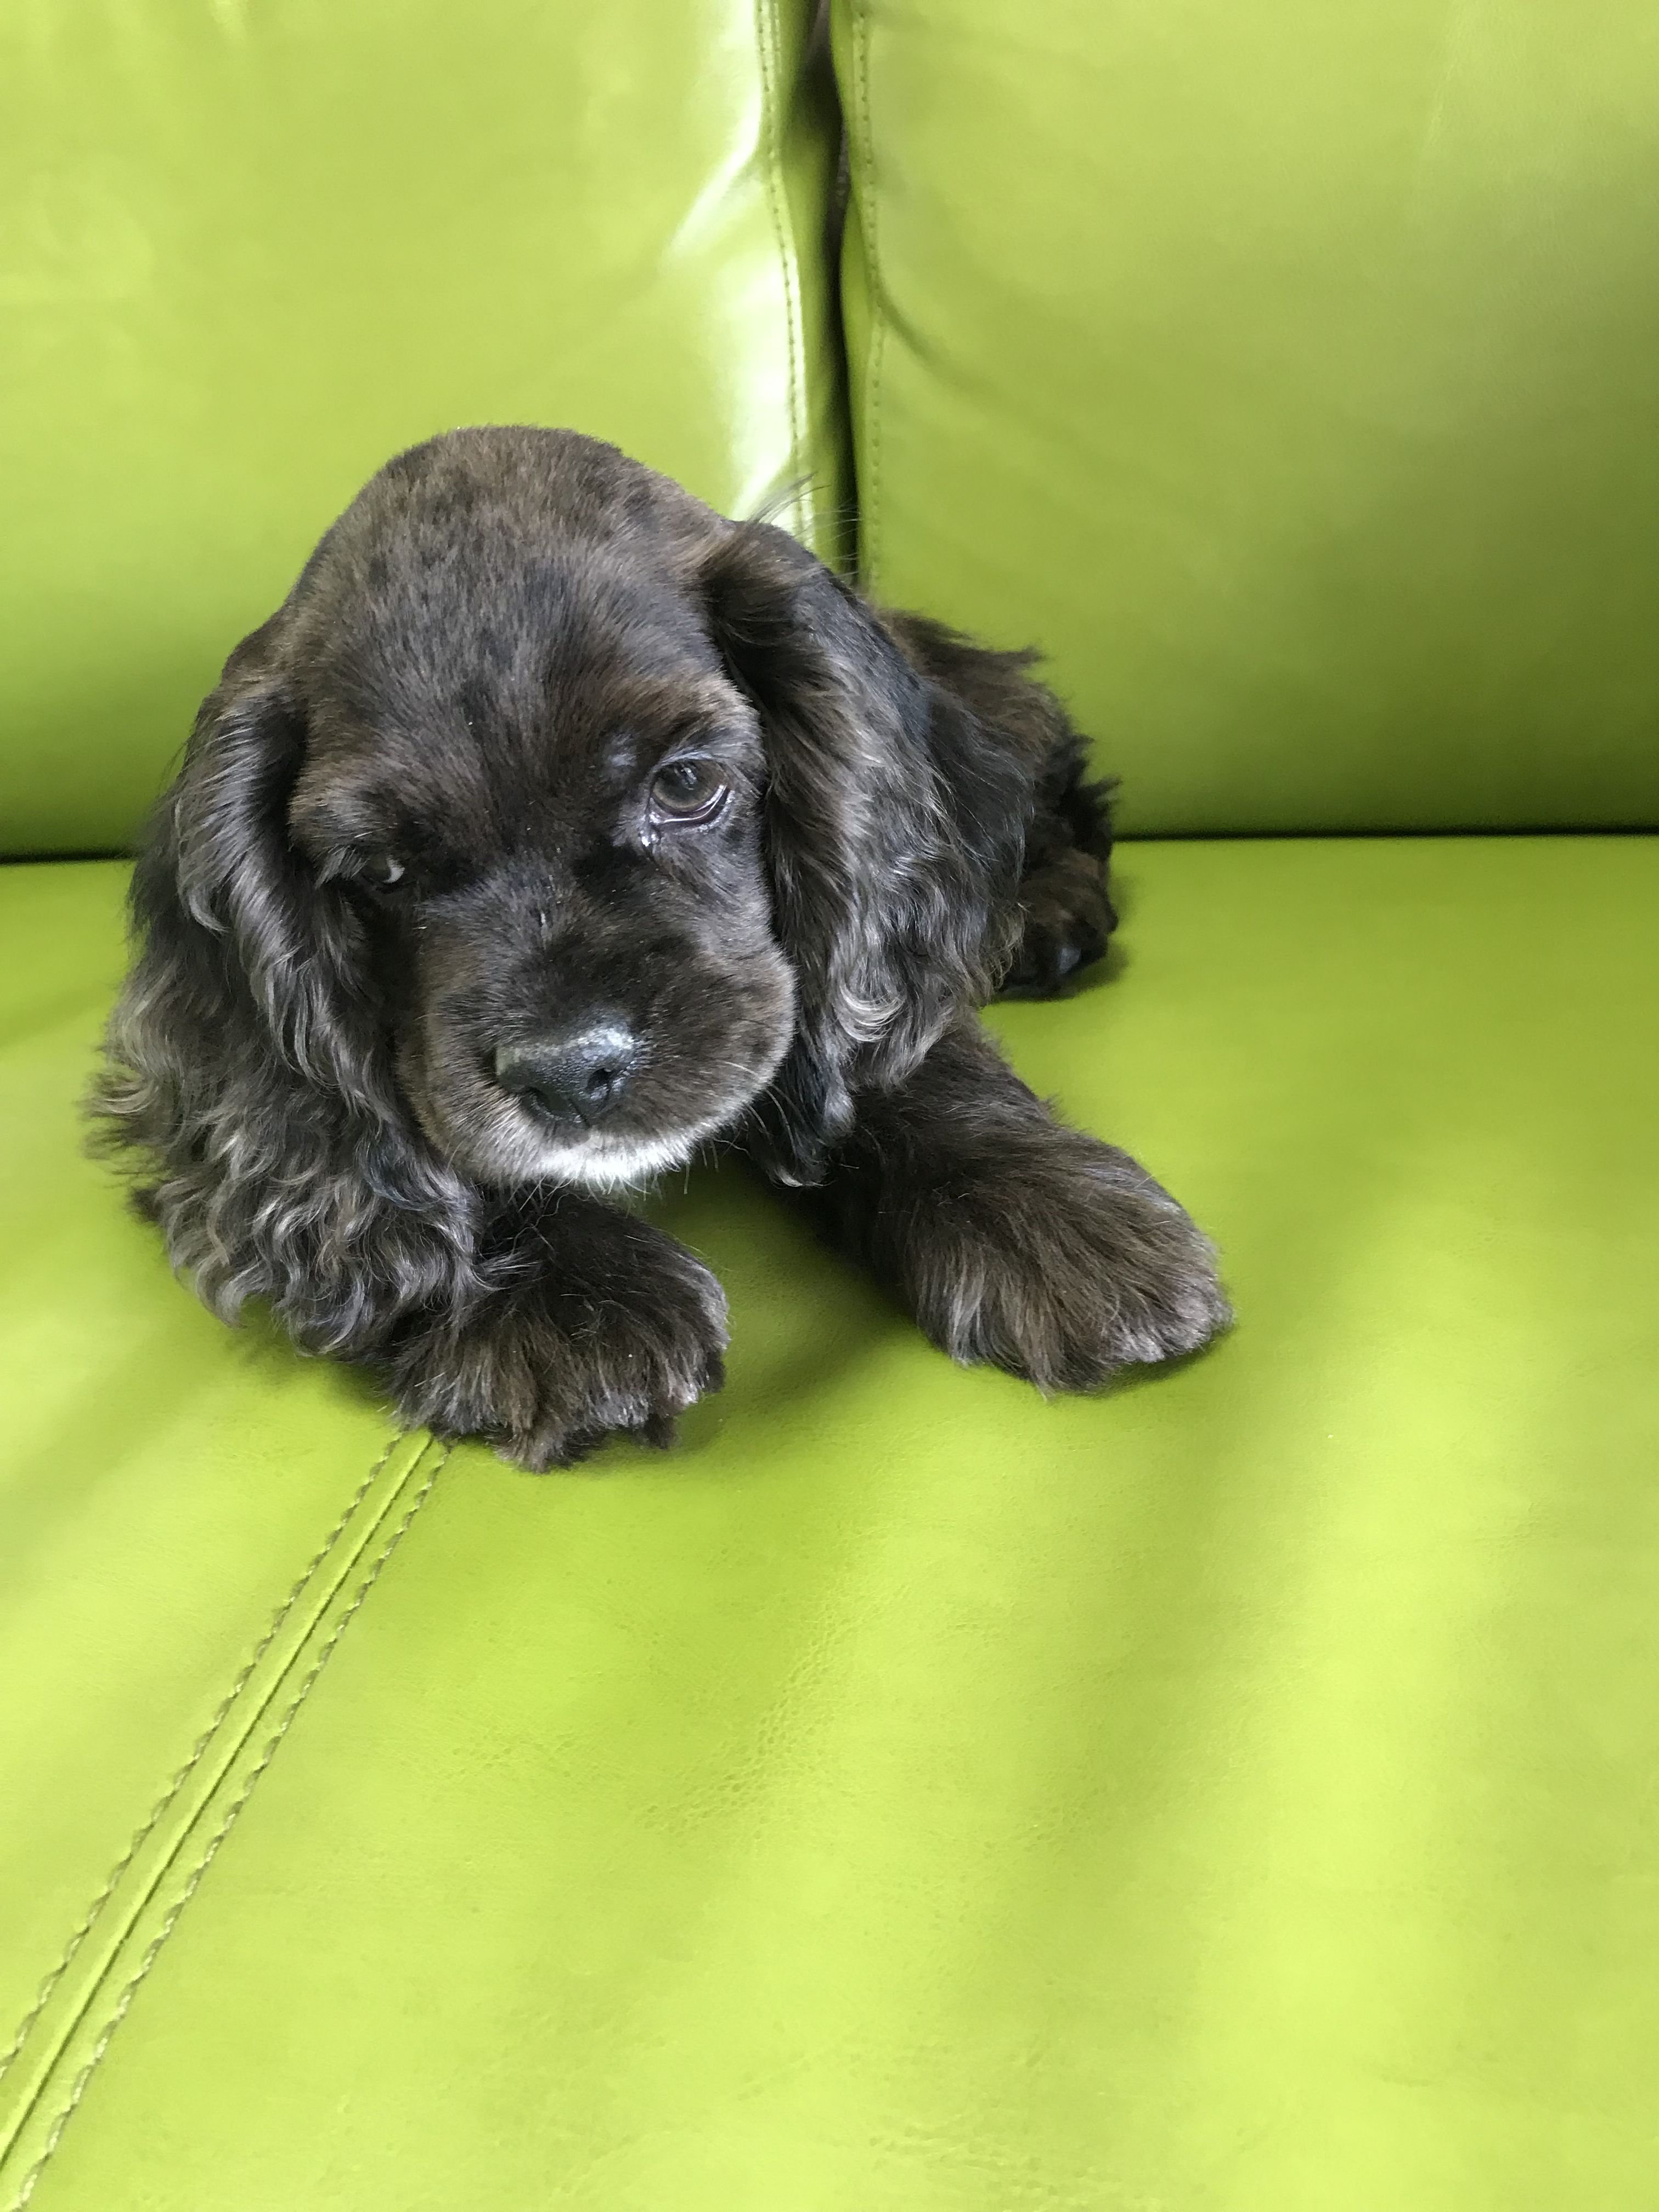 This Is The Cutest Cocker Spaniel I Ve Ever Seen Cocker Spaniel Puppies Spaniel Puppies Cocker Spaniel